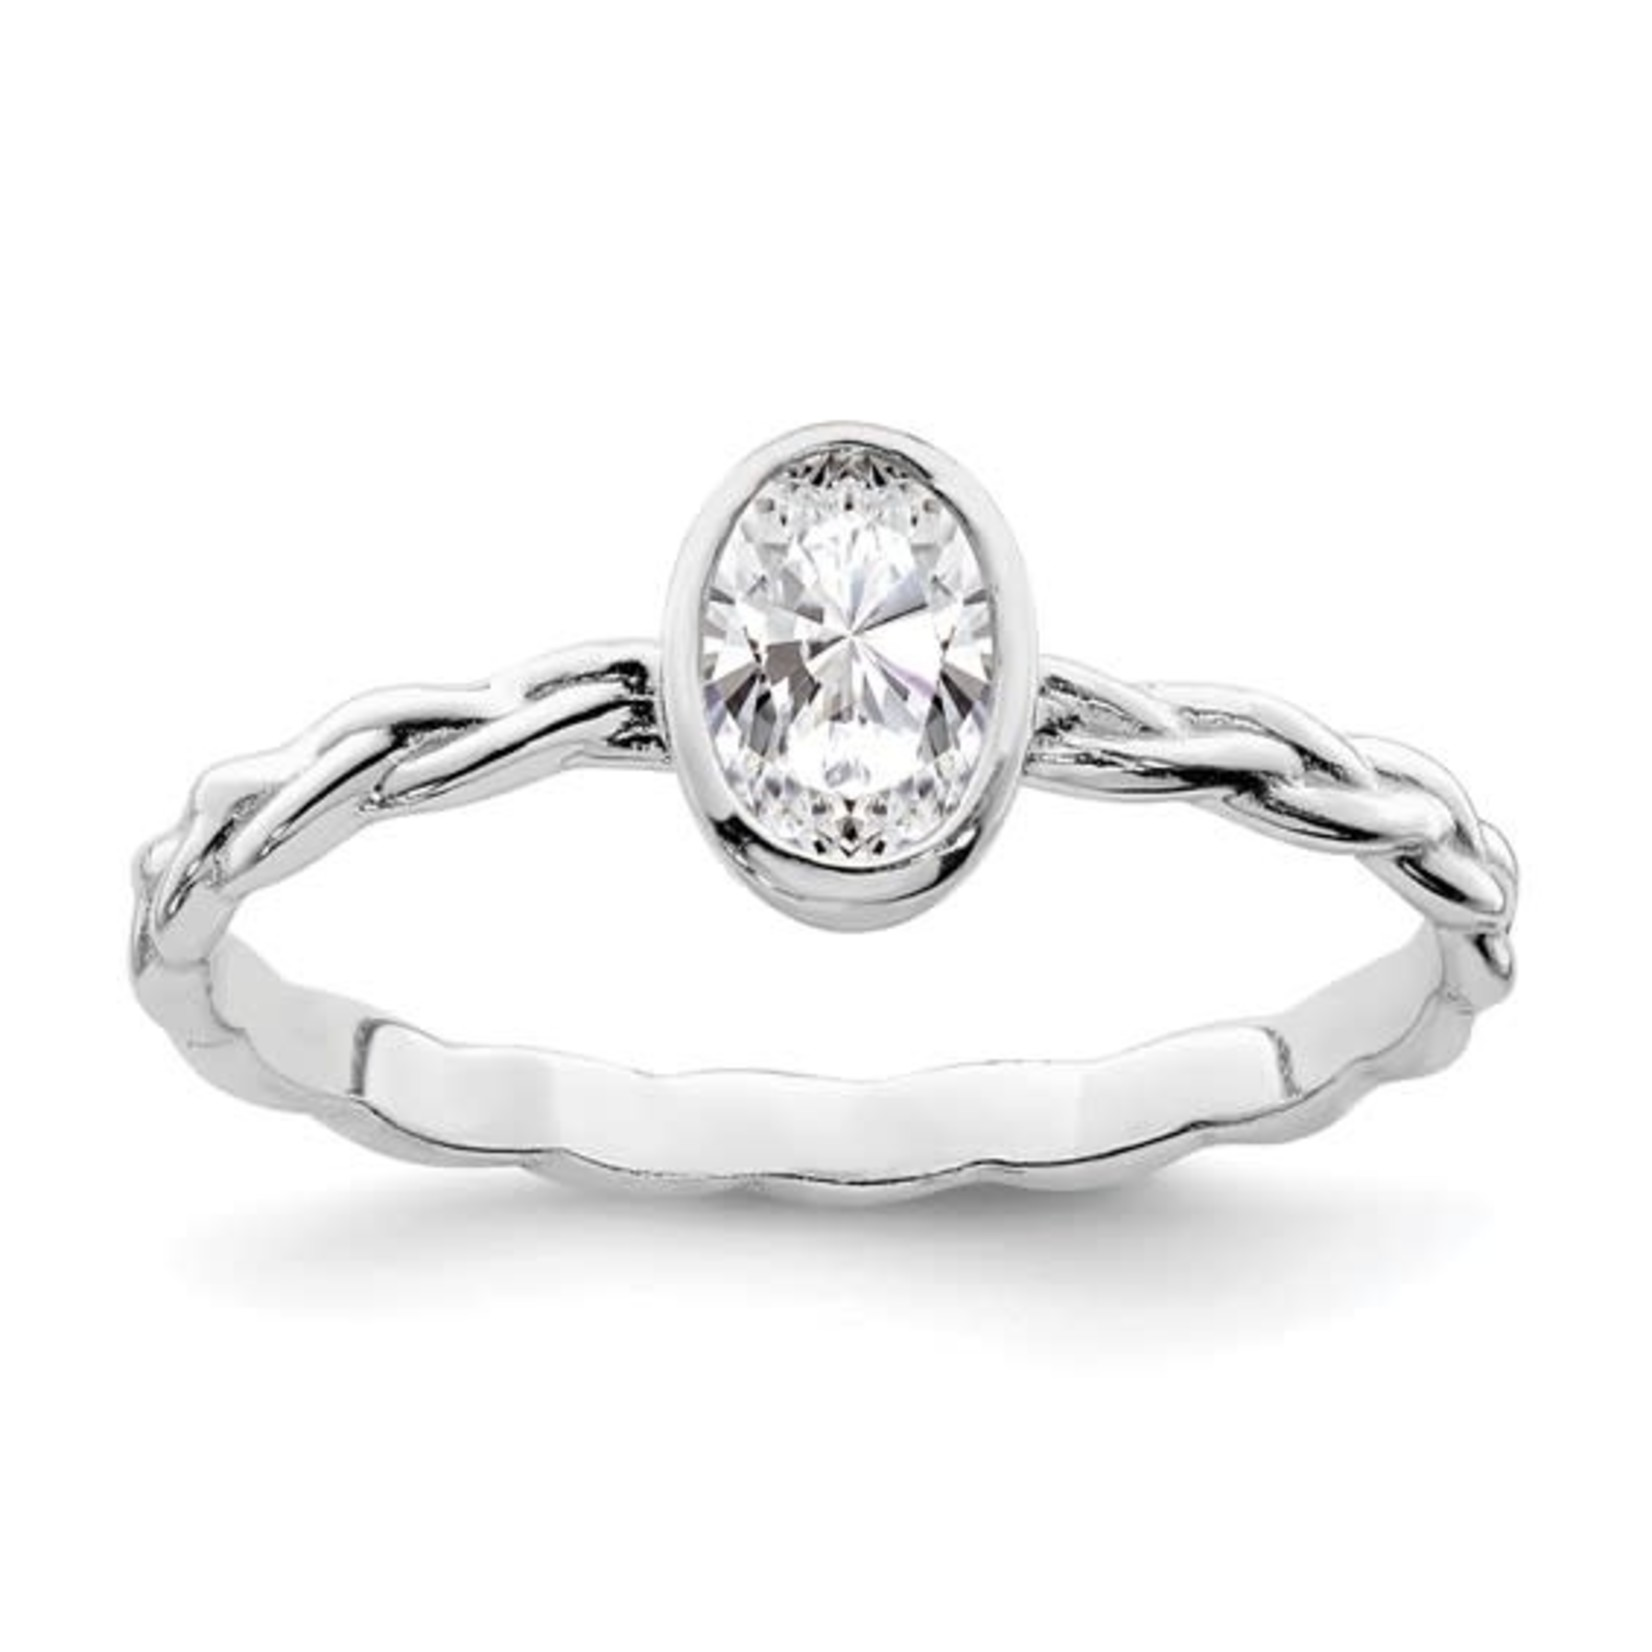 This Is Life Oval With A Twist Sterling Silver Ring